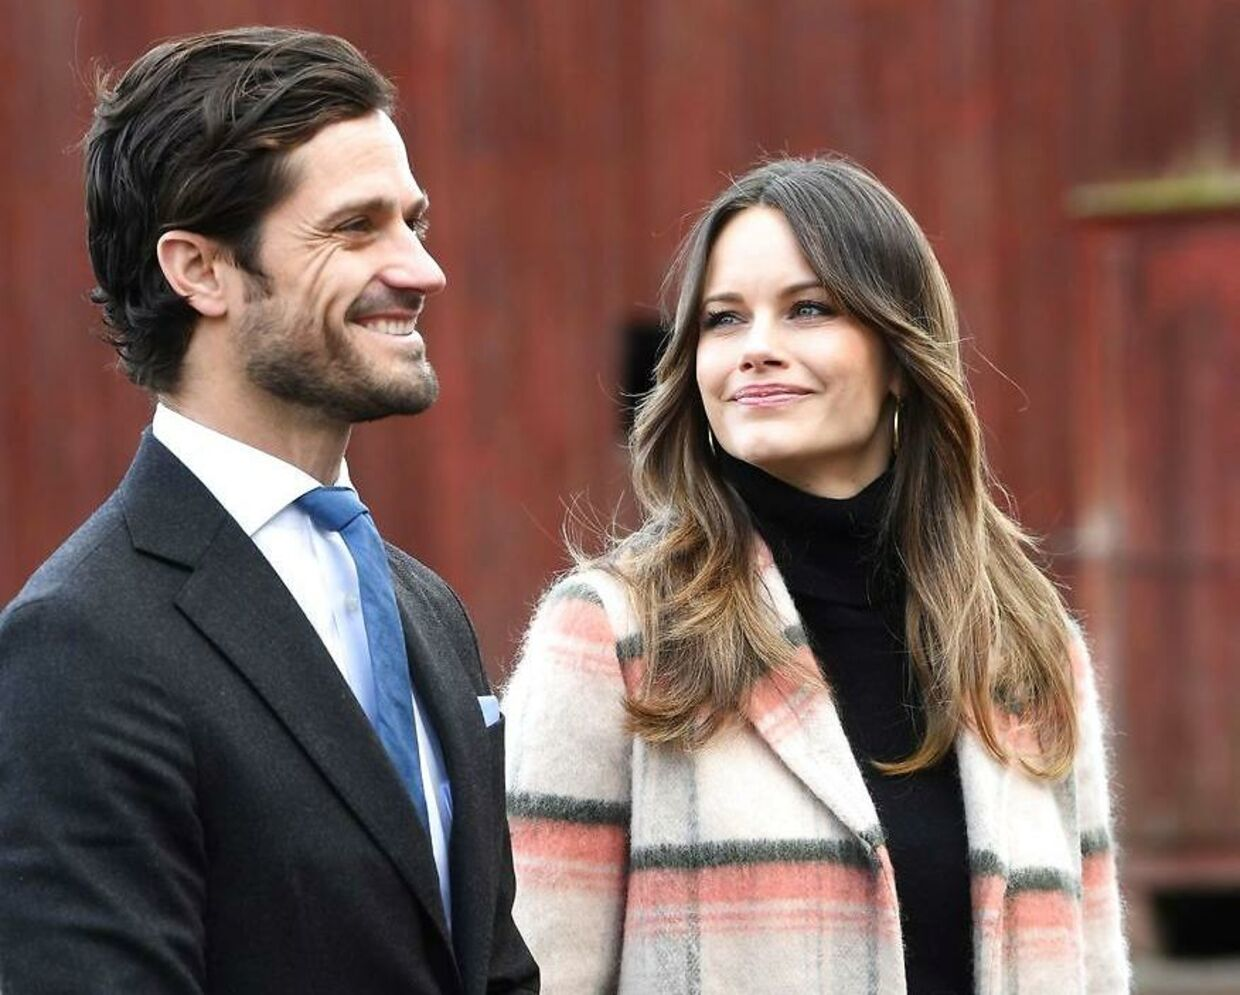 This picture taken on October 28, 2020 shows Prince Carl Philip of Sweden and Princess Sofia of Sweden during a visit of the Kulinarika vineyard in Sunne, Sweden. - Prince Carl Philip and Princess Sofia of Sweden expect their third child while the birth is awaited around the turn of the month March-April in 2021. (Photo by Fredrik SANDBERG / TT News Agency / AFP) / Sweden OUT